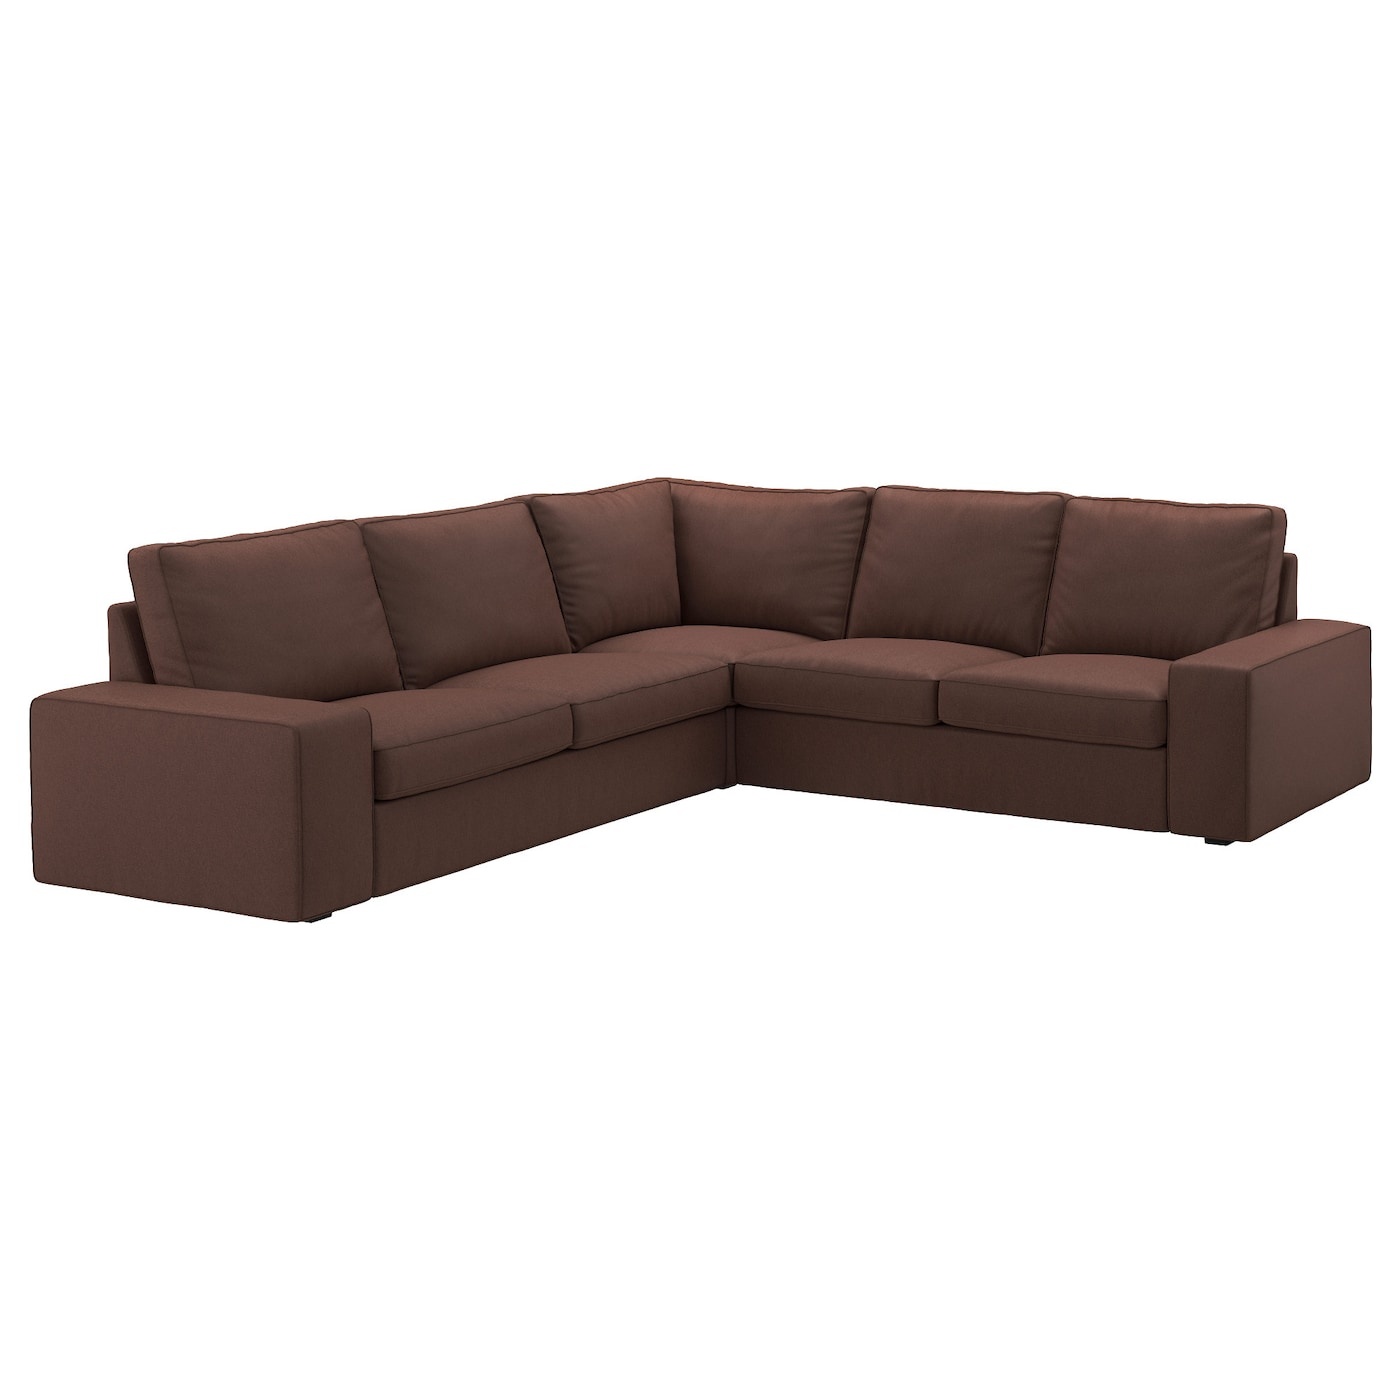 Kivik corner sofa 2 2 borred dark brown ikea for Sofa jugendzimmer ikea